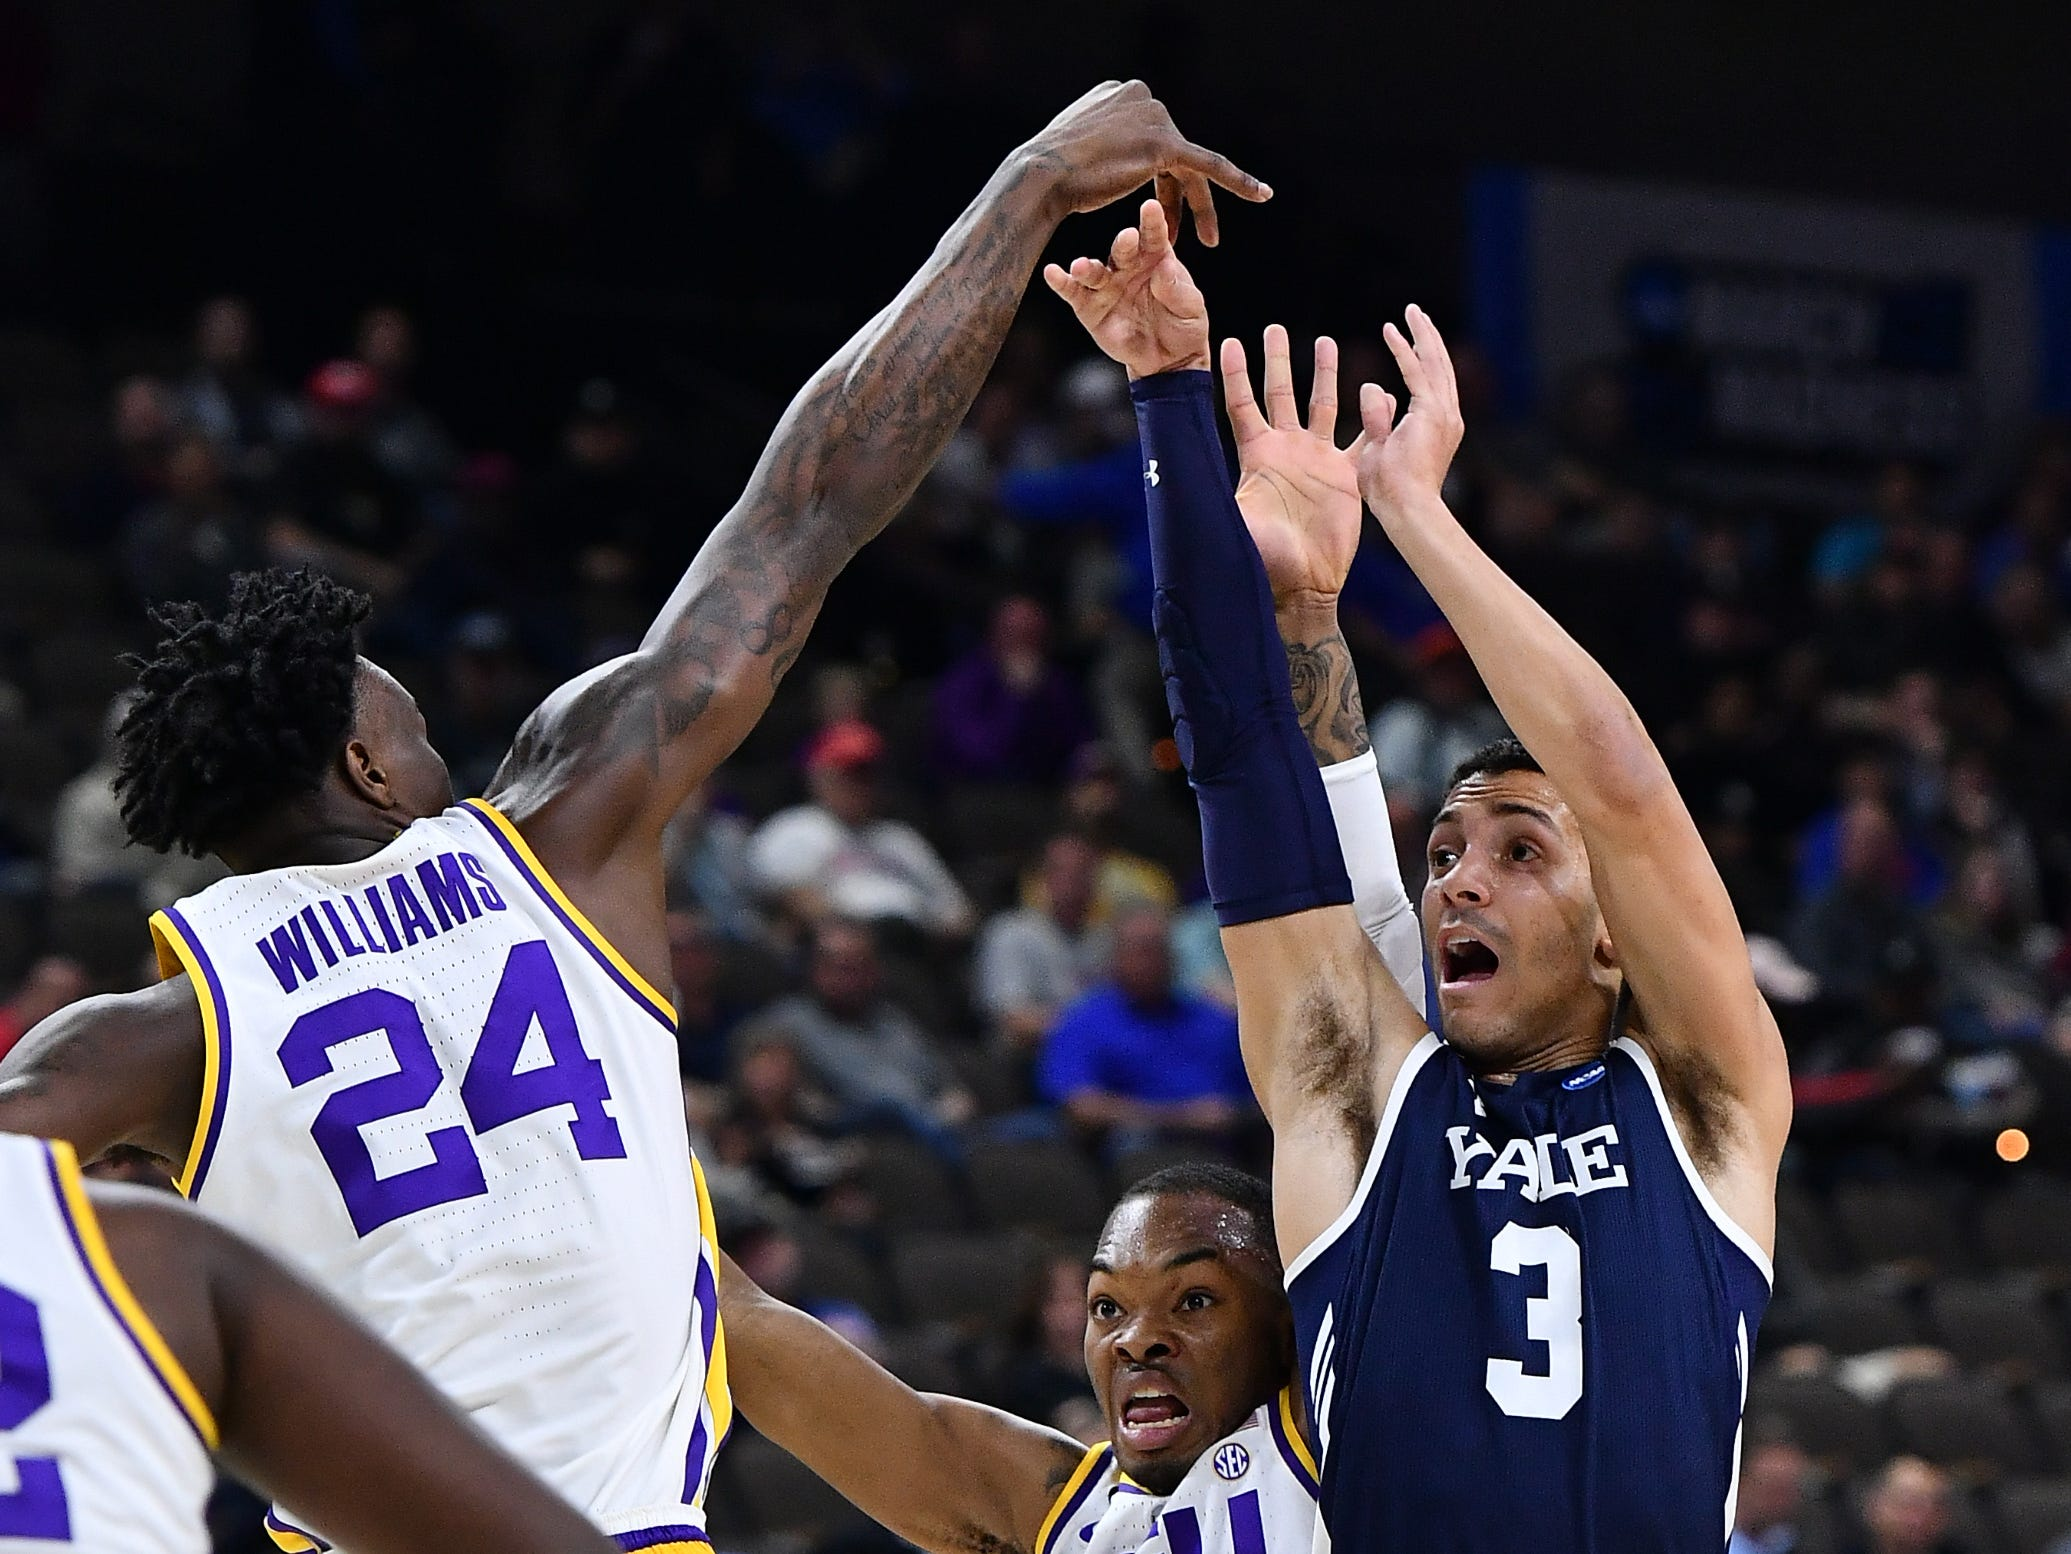 Mar 21, 2019; Jacksonville, FL, USA; LSU Tigers forward Emmitt Williams (24) blocks a shot by Yale Bulldogs guard Alex Copeland (3) as LSU guard Javonte Smart (1) assists during the first half in the first round of the 2019 NCAA Tournament at Jacksonville Veterans Memorial Arena. Mandatory Credit: John David Mercer-USA TODAY Sports